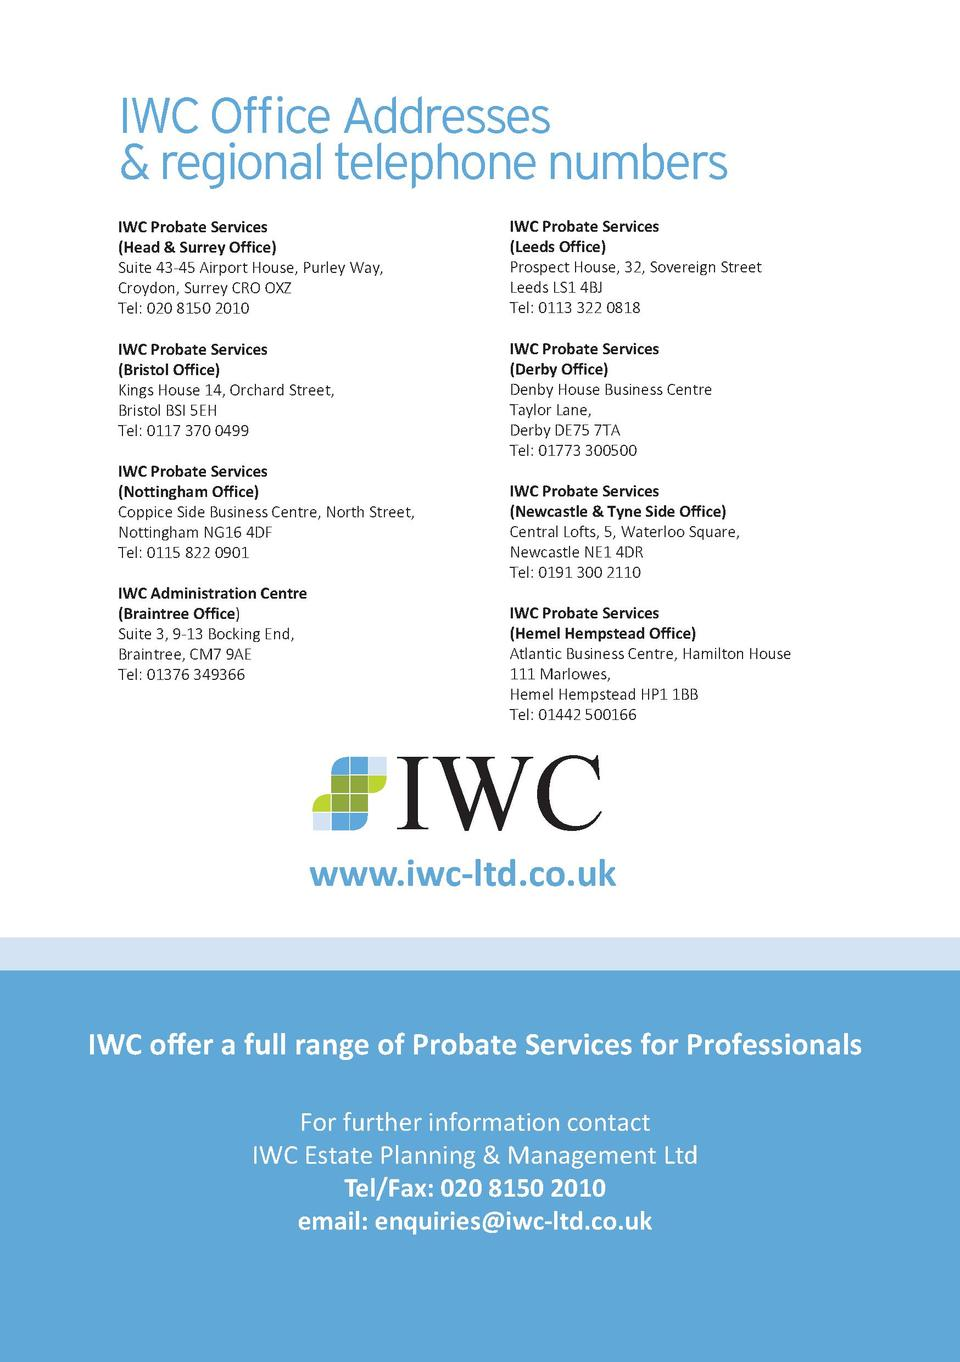 IWC Office Addresses   regional telephone numbers IWC Probate Services  Head   Surrey Office  Suite 43-45 Airport House, P...